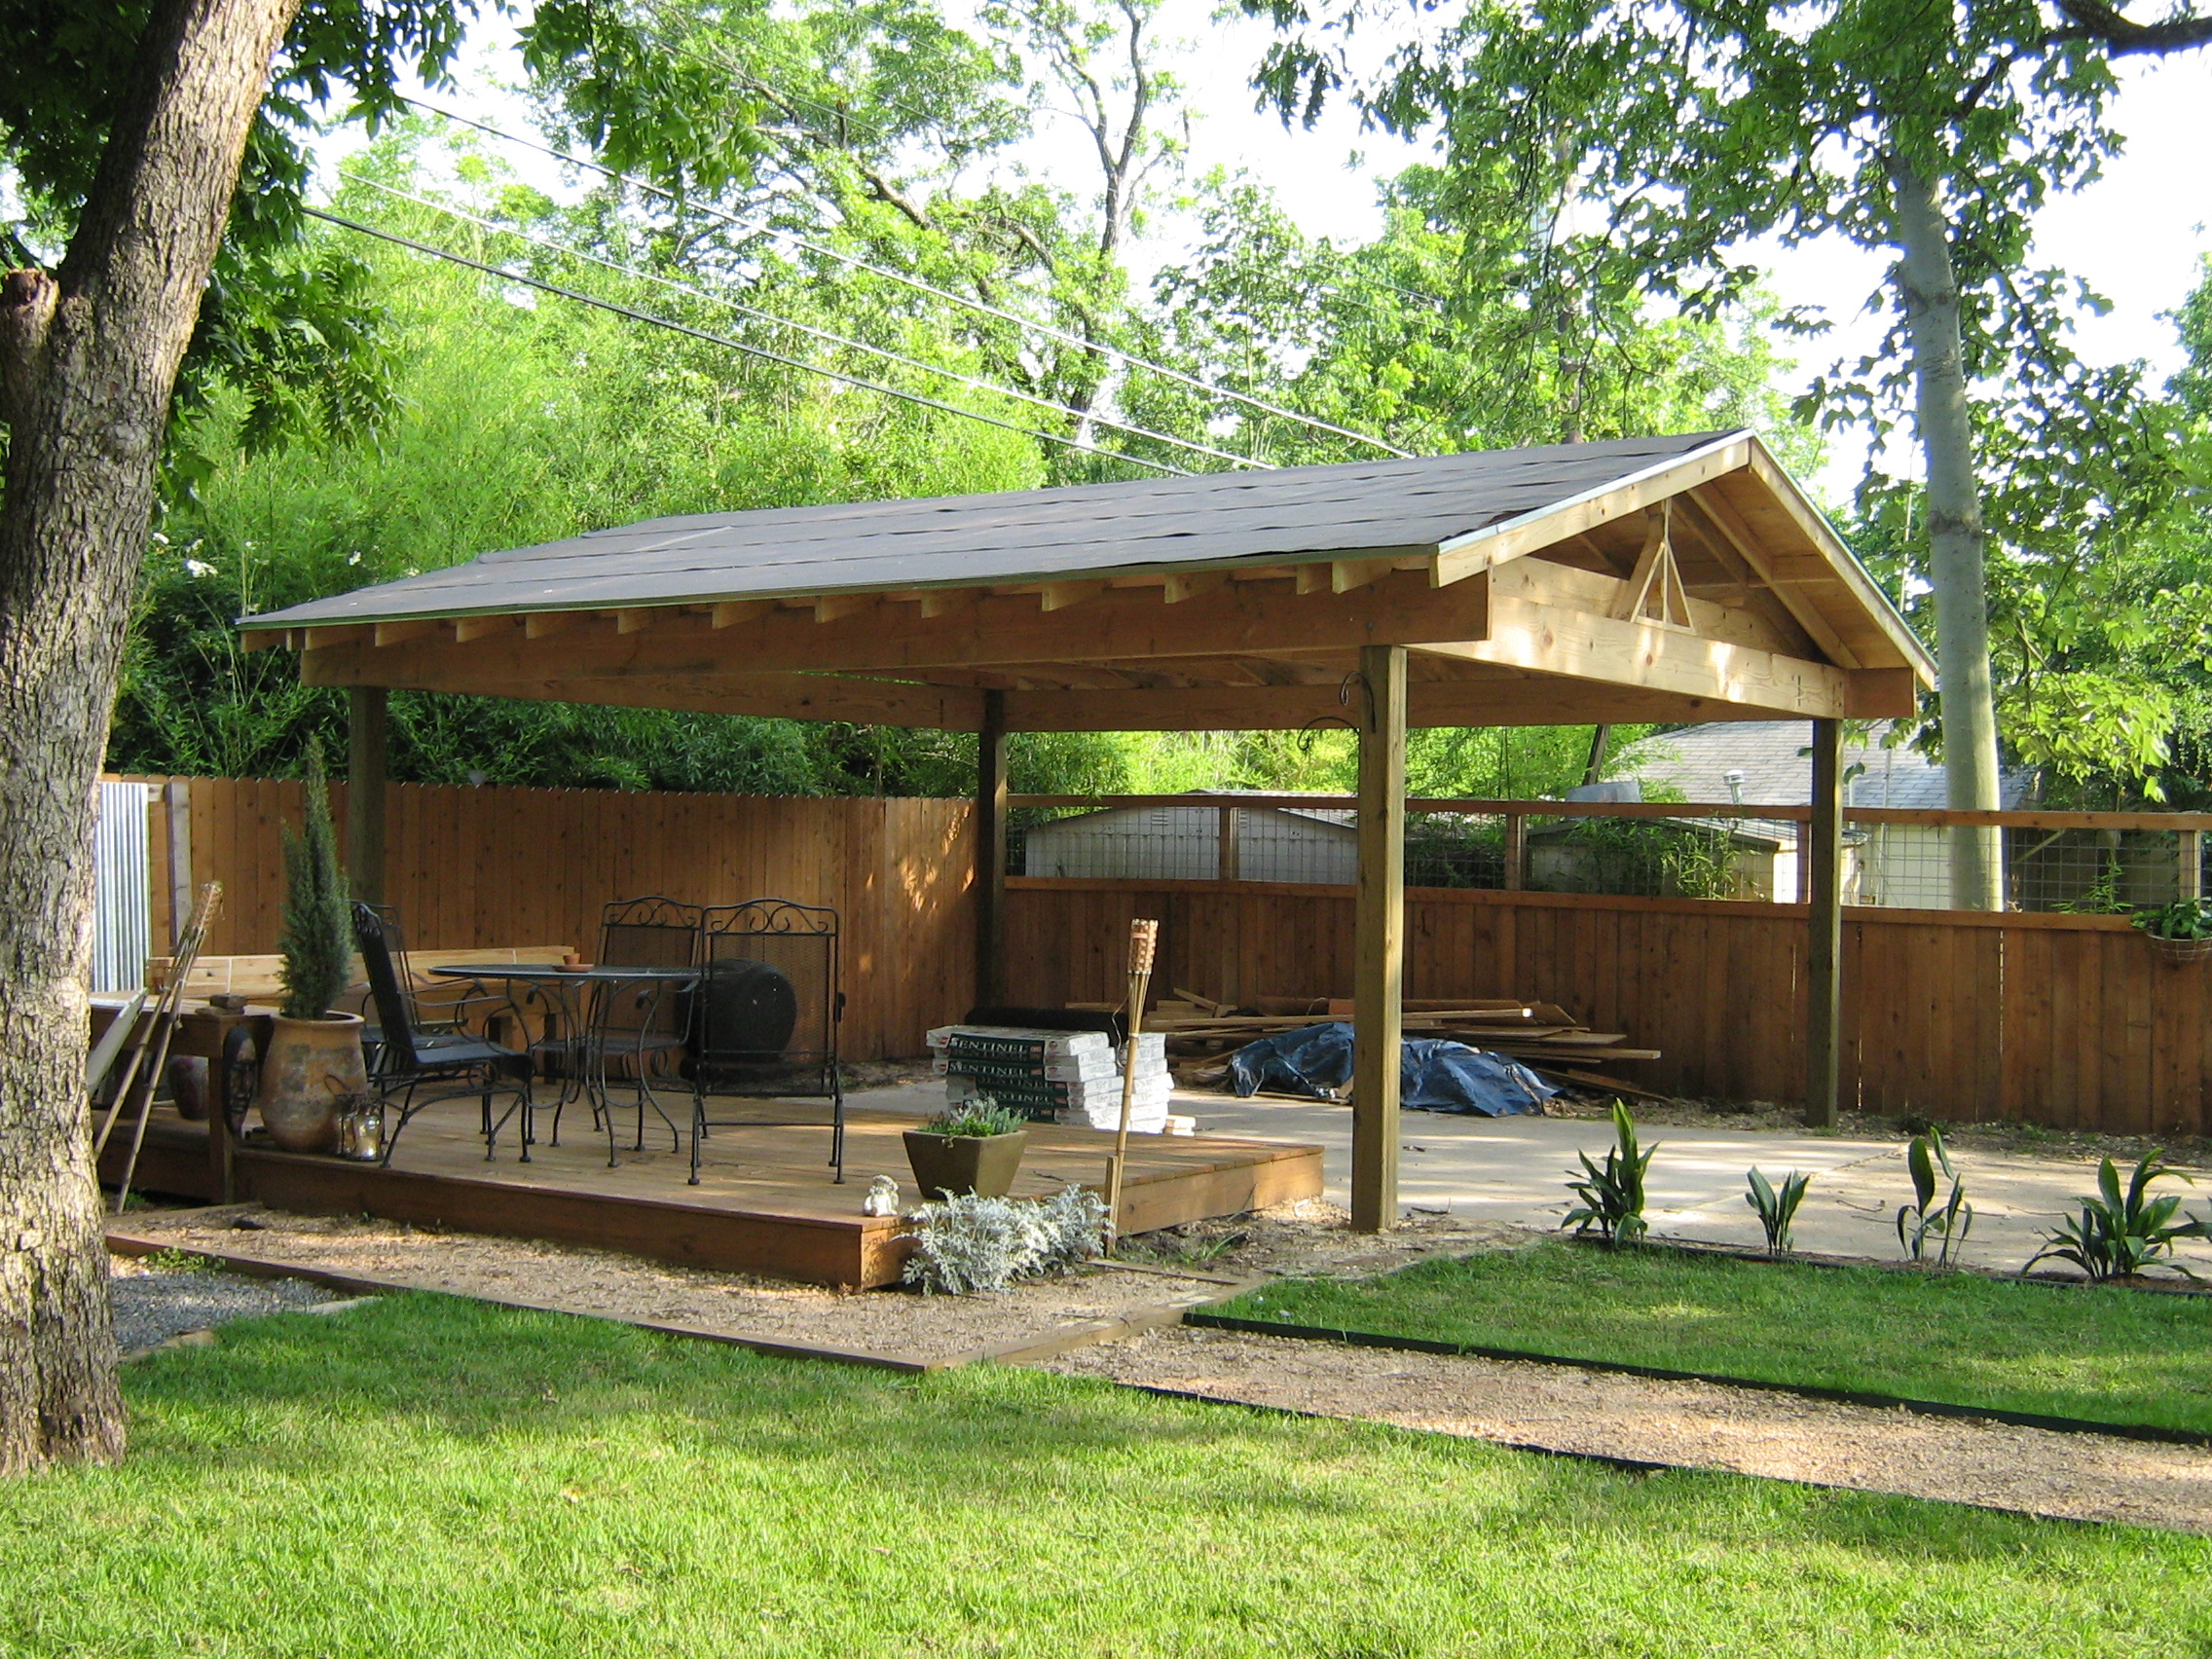 How to build wood carport kits do it yourself plans Wood carport plans free